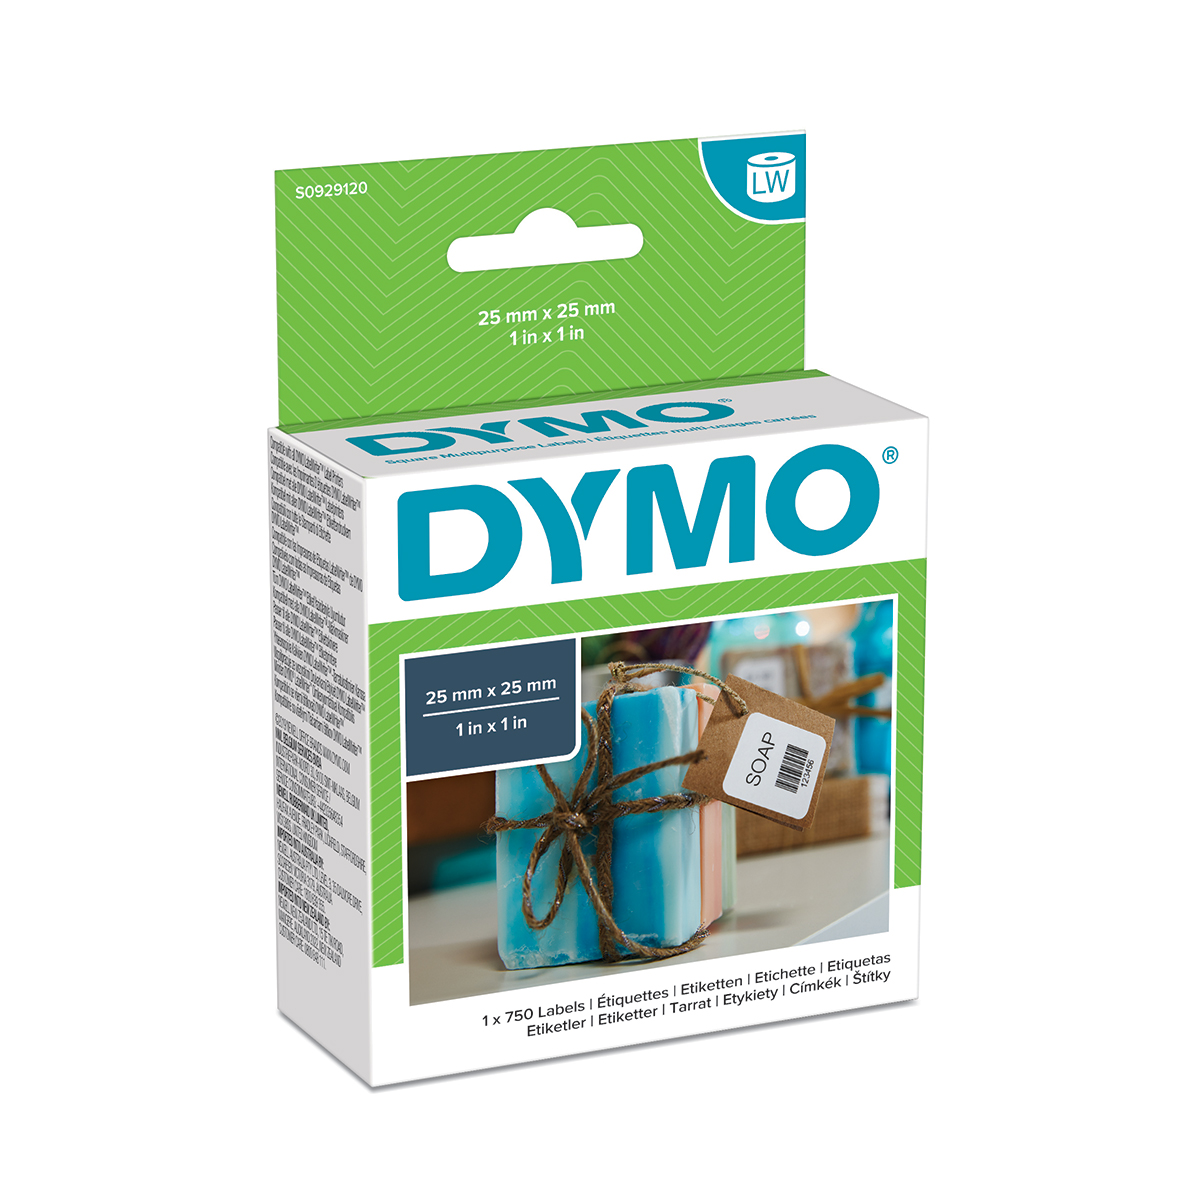 Dymo S0929120 25mm x 25mm Square Multipurpose Labels pack of 750